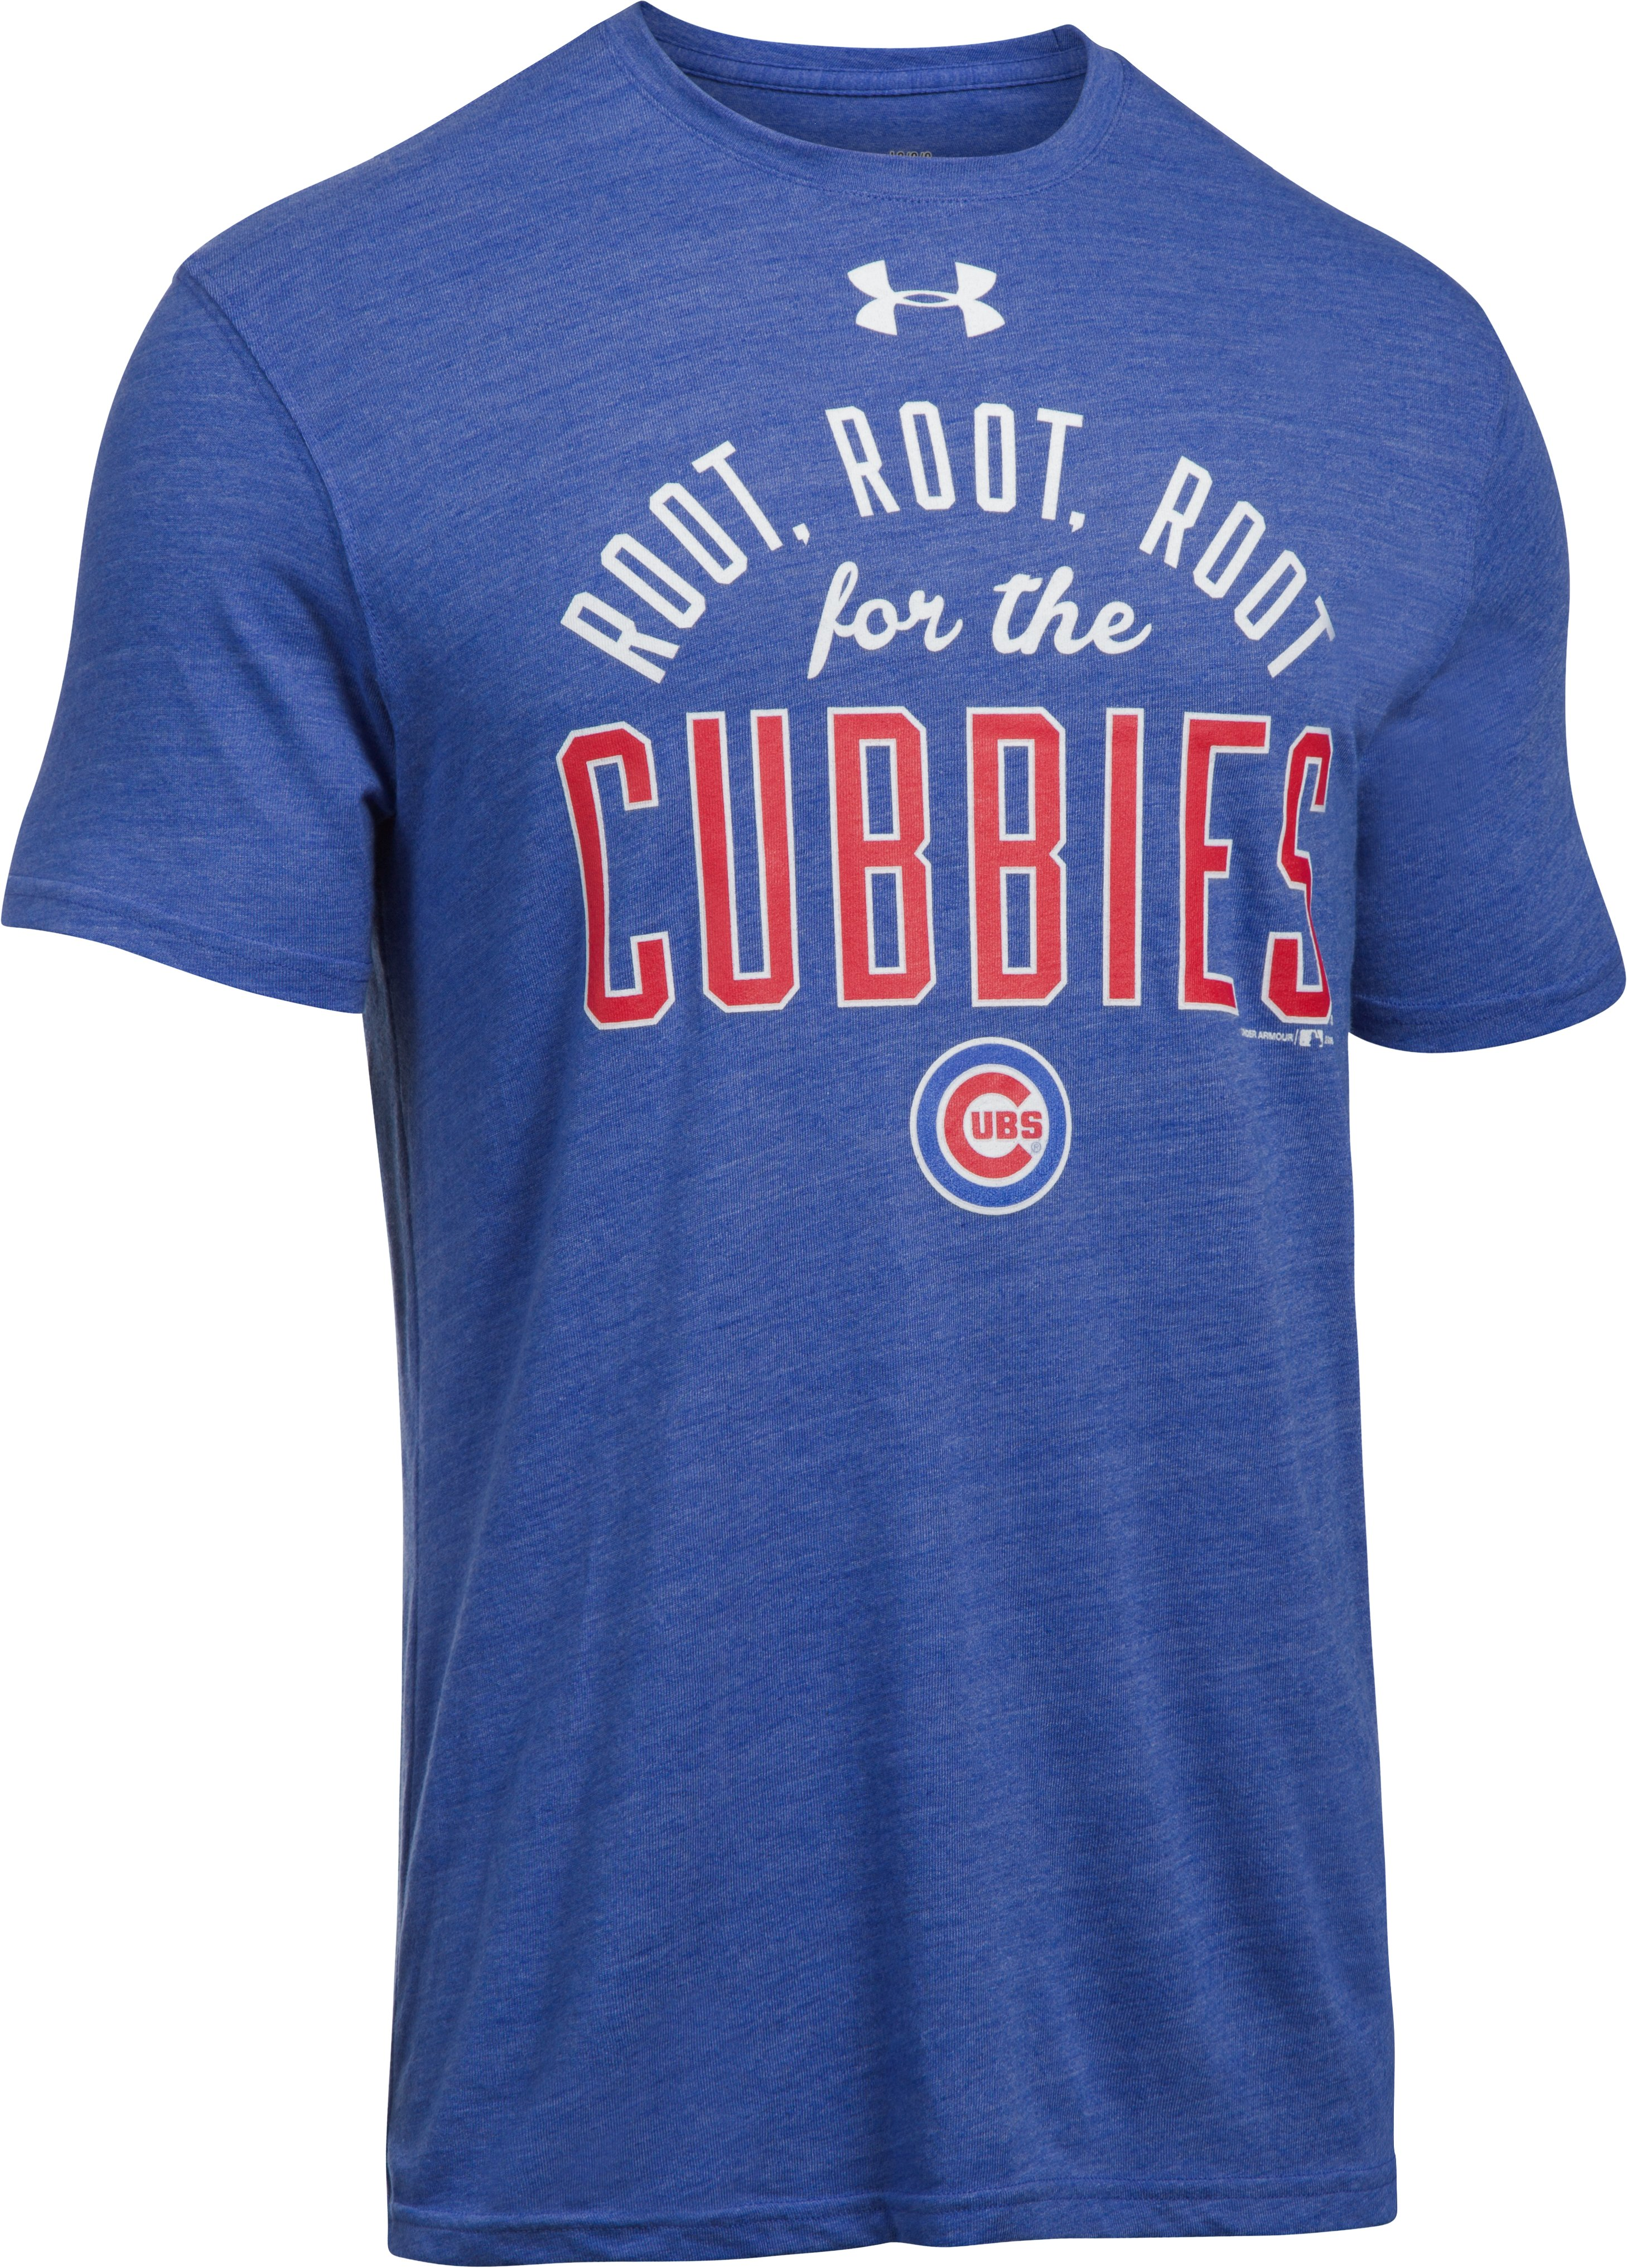 Men's Chicago Cubs Root Root Root for the Cubbies T-Shirt, Royal,